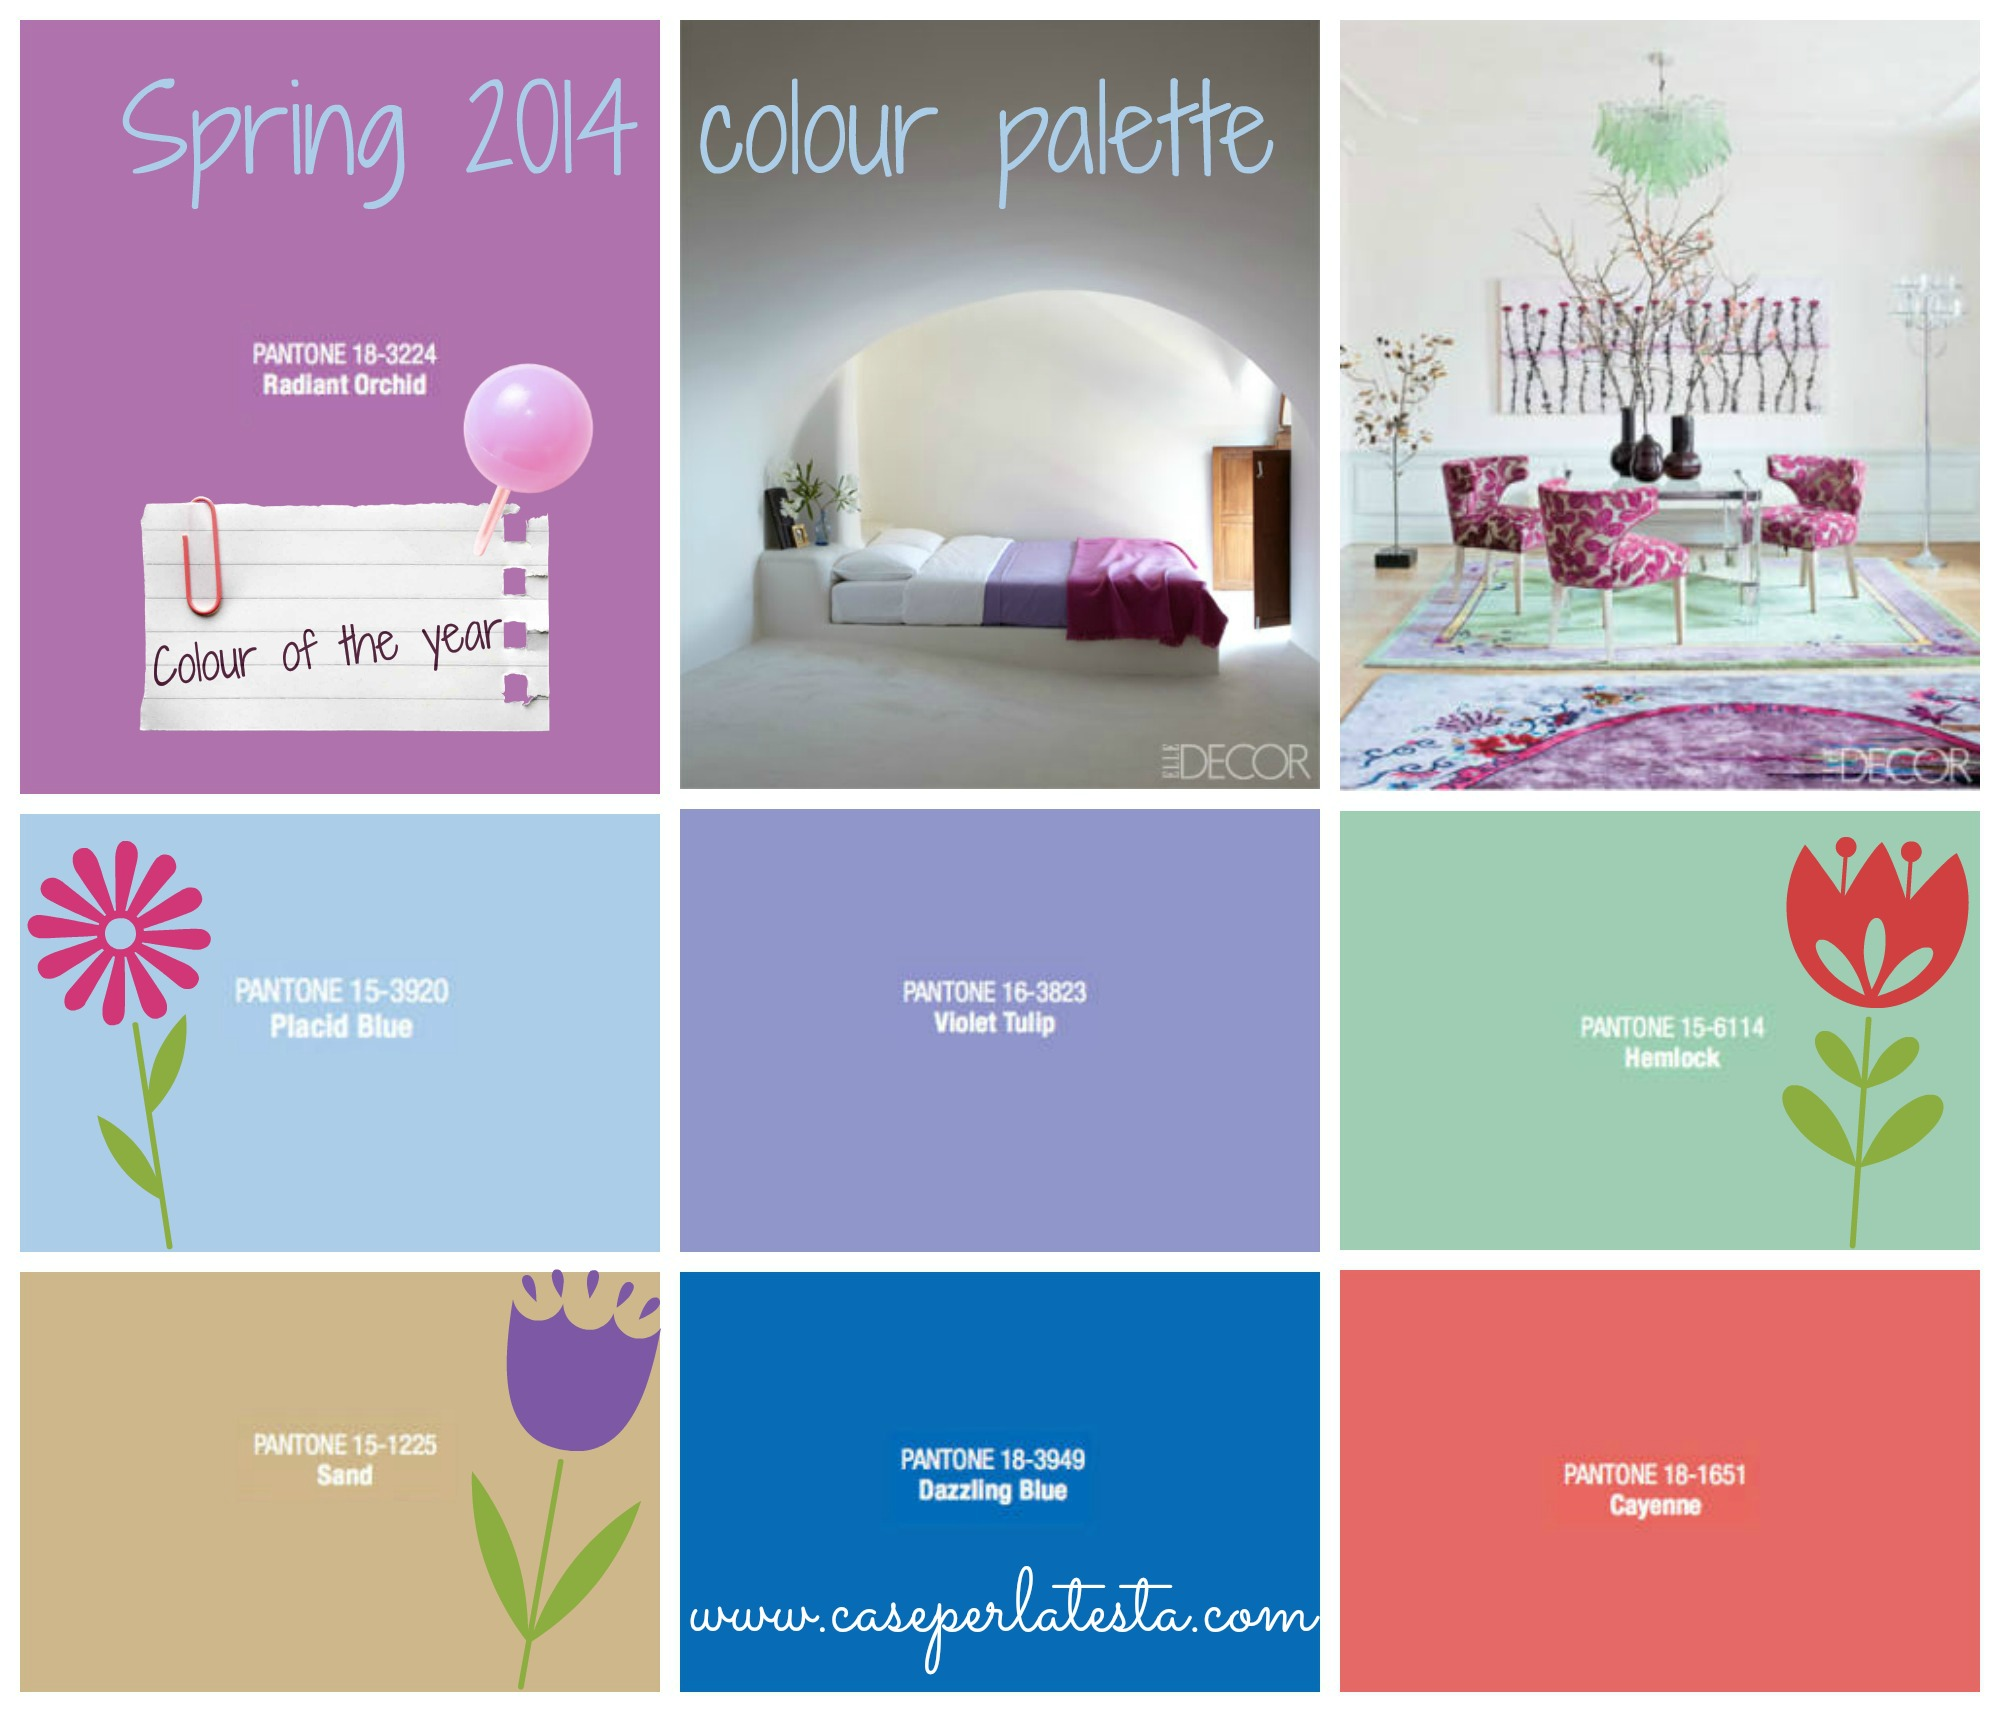 Get the look - Colori primavera 2014 *Spring 2014 colour palette